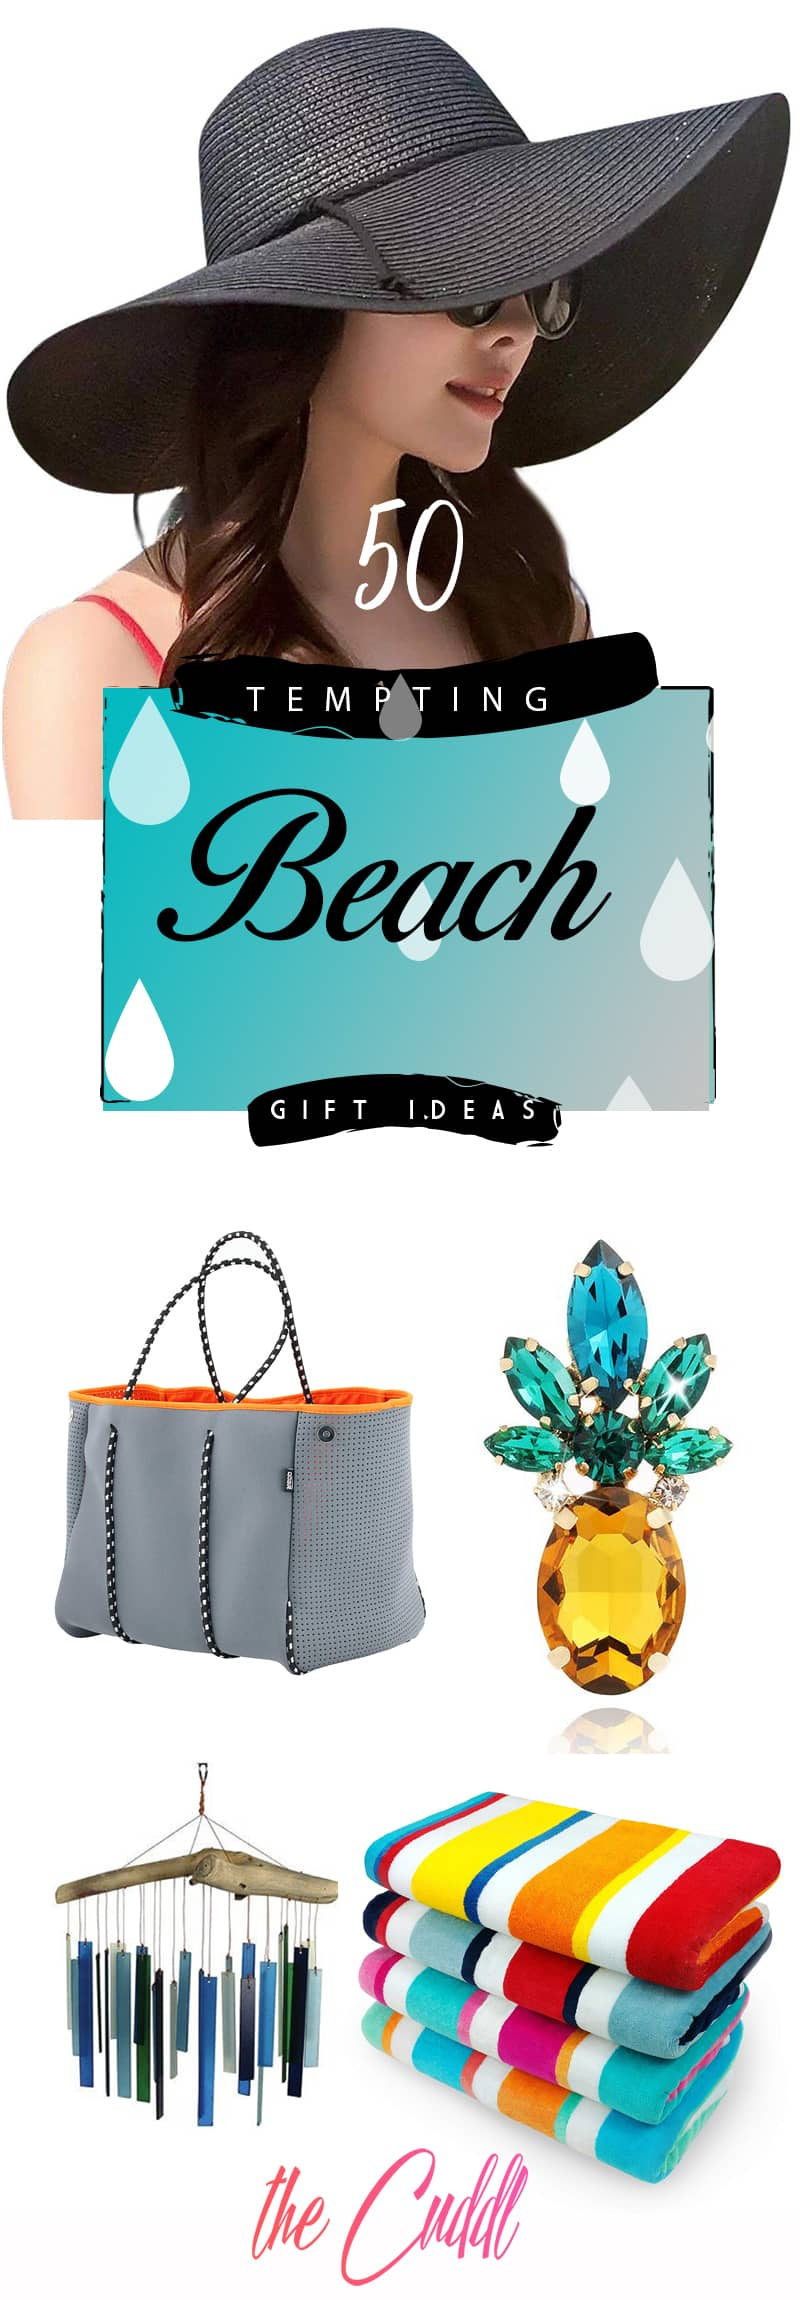 50 of the Top Beach Gifts for Any Ocean Lover